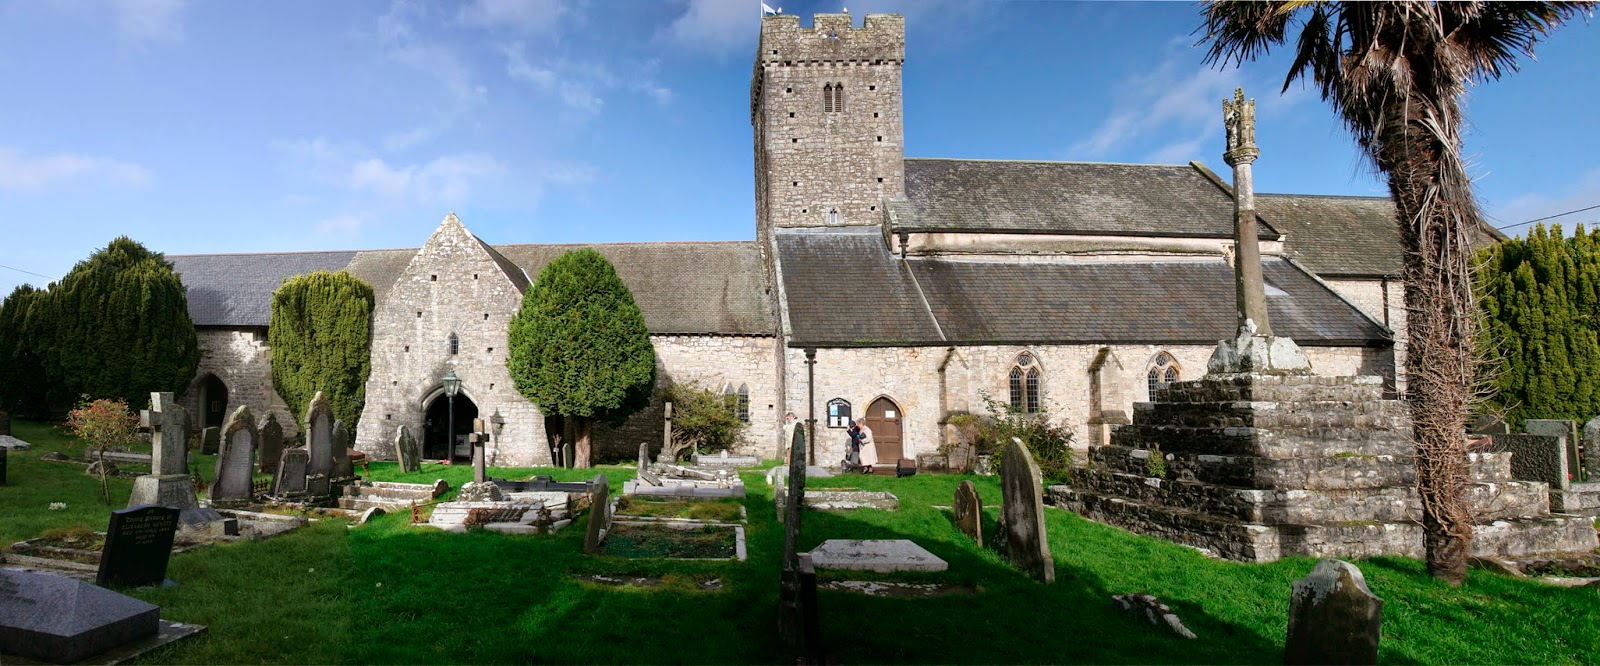 St Illtud's Church, Llantwit Major